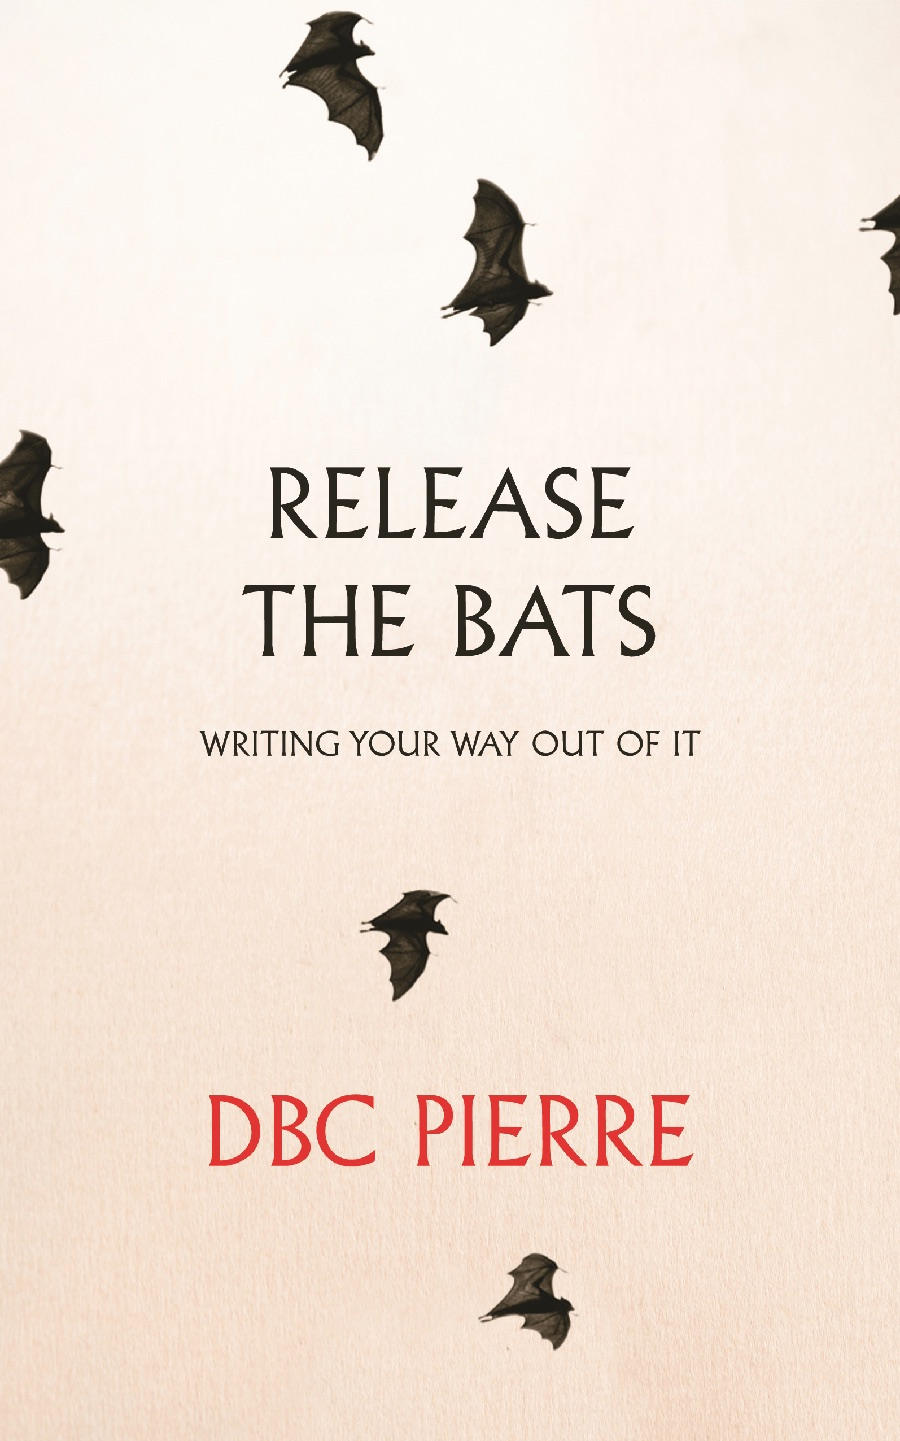 release_the_bats_DBCPIERRE_cover